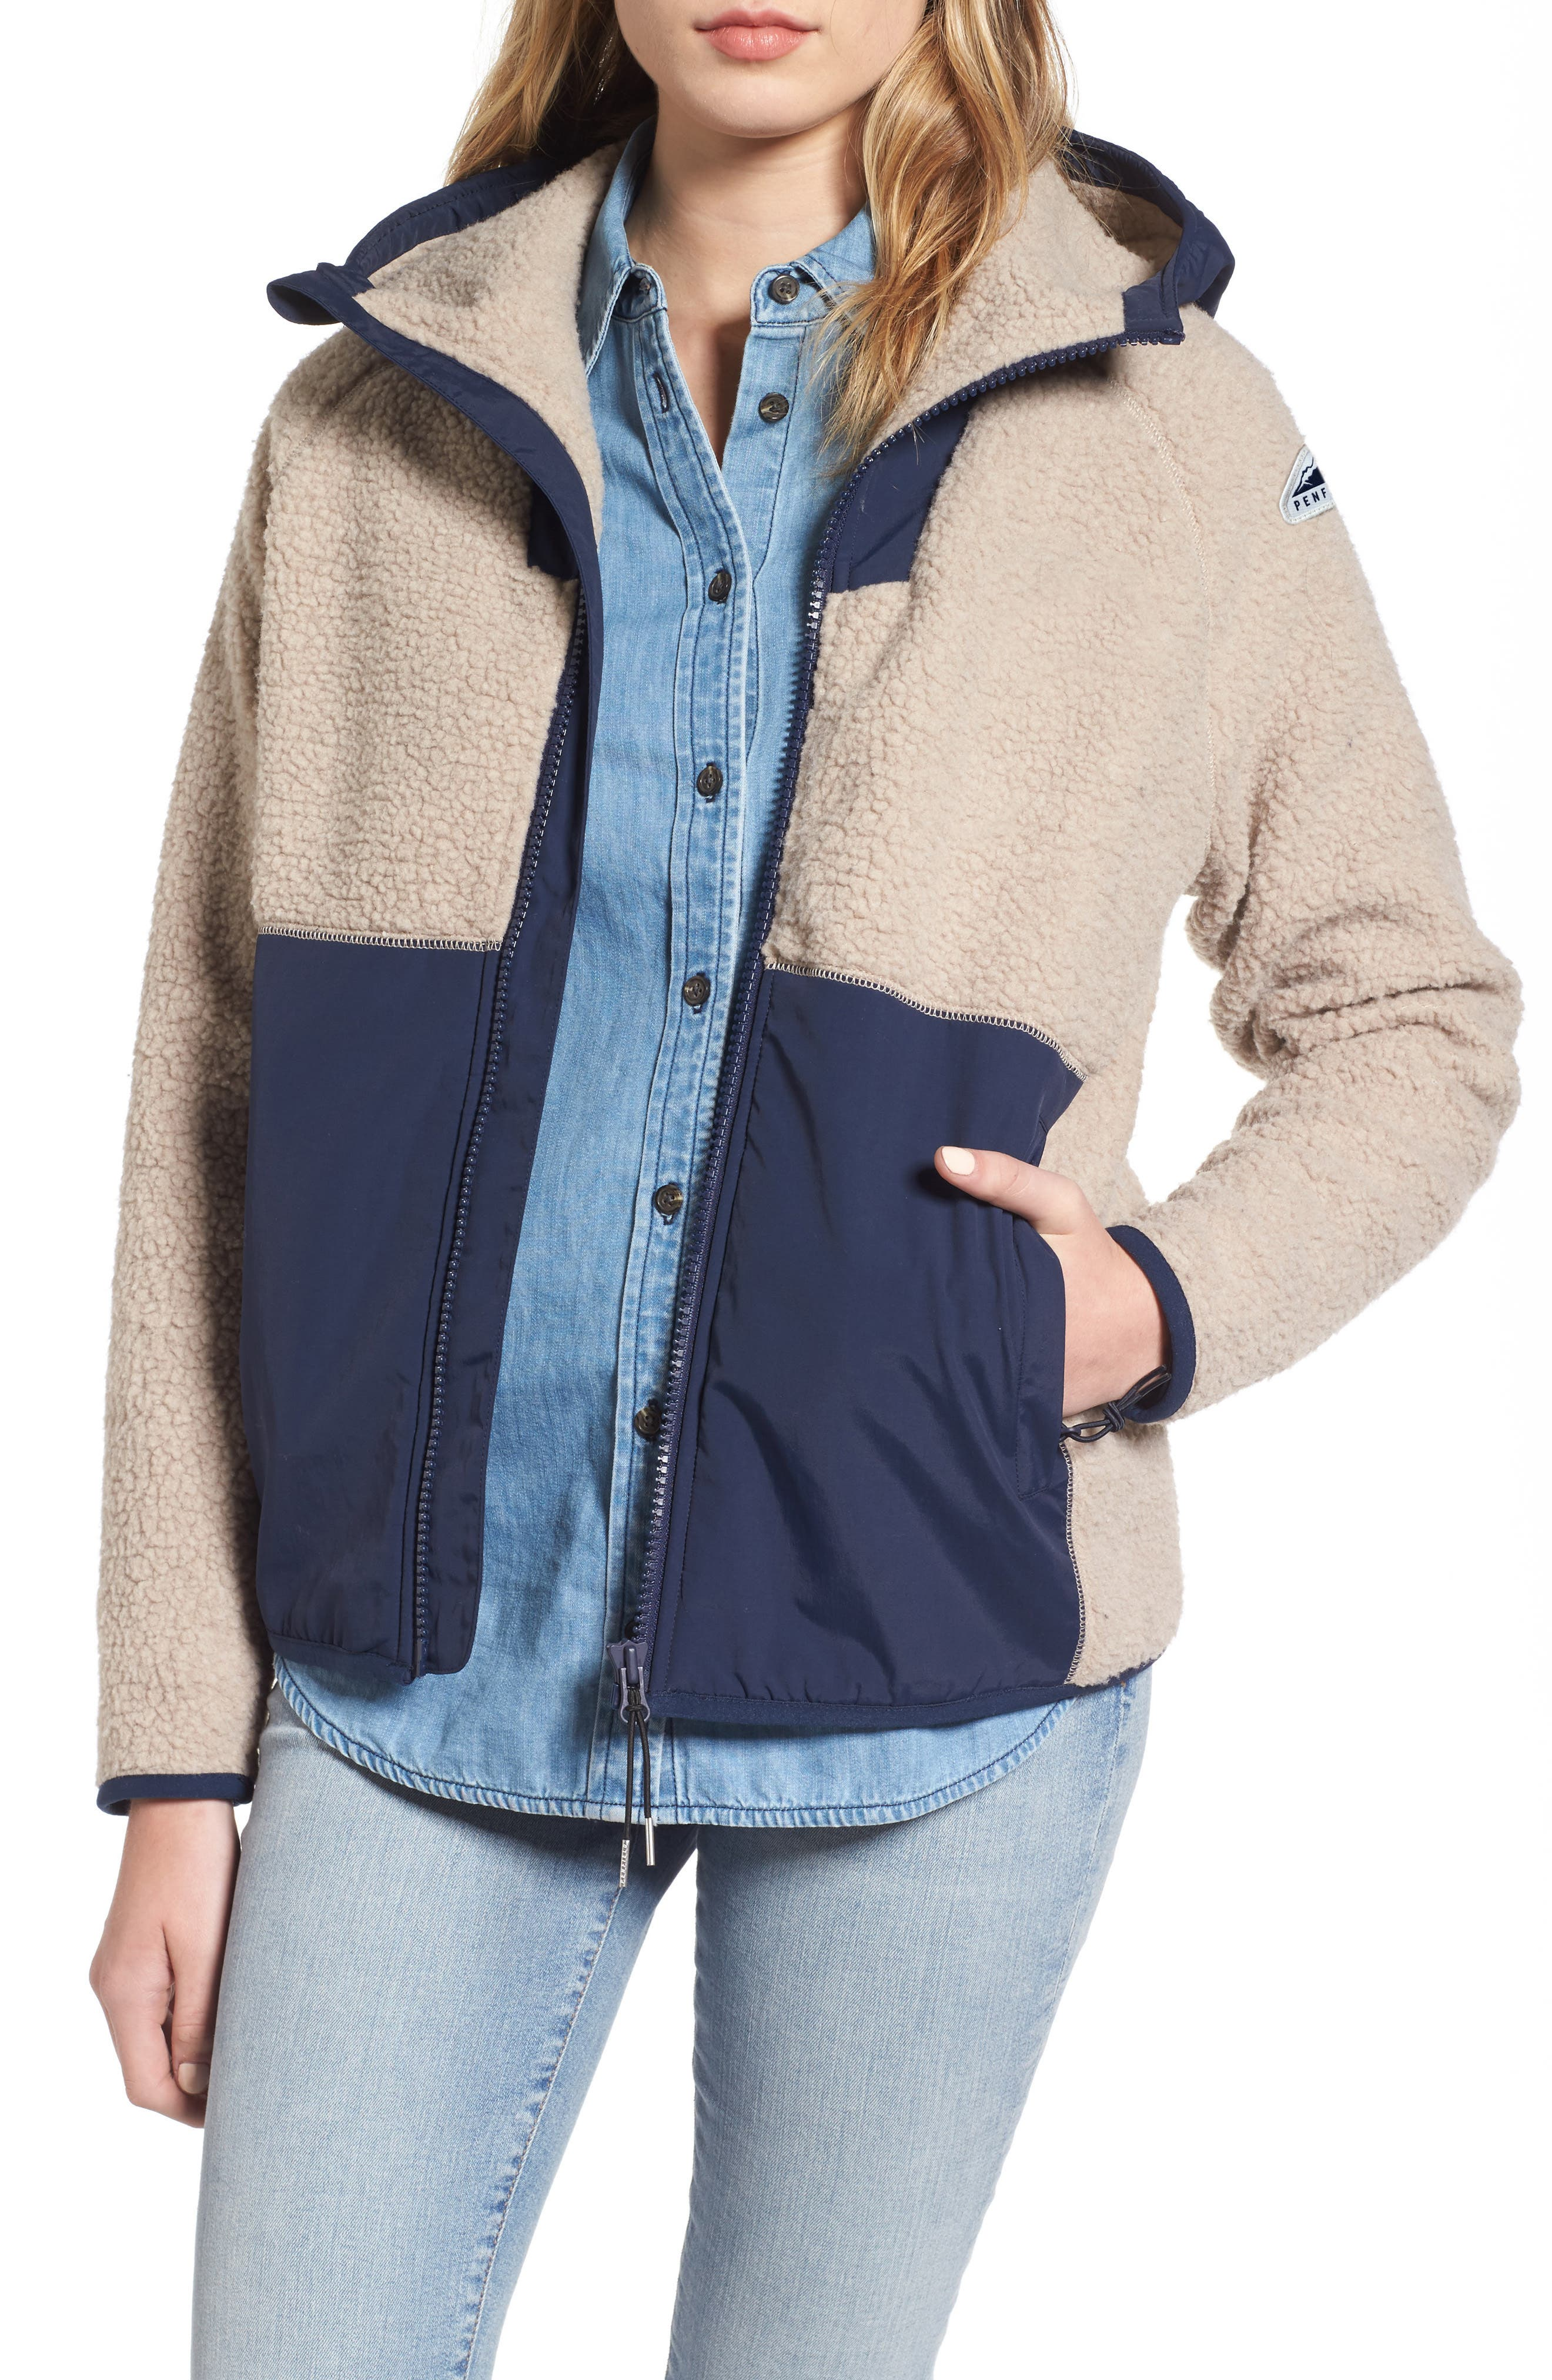 Vaughn Fleece Jacket,                             Main thumbnail 1, color,                             252